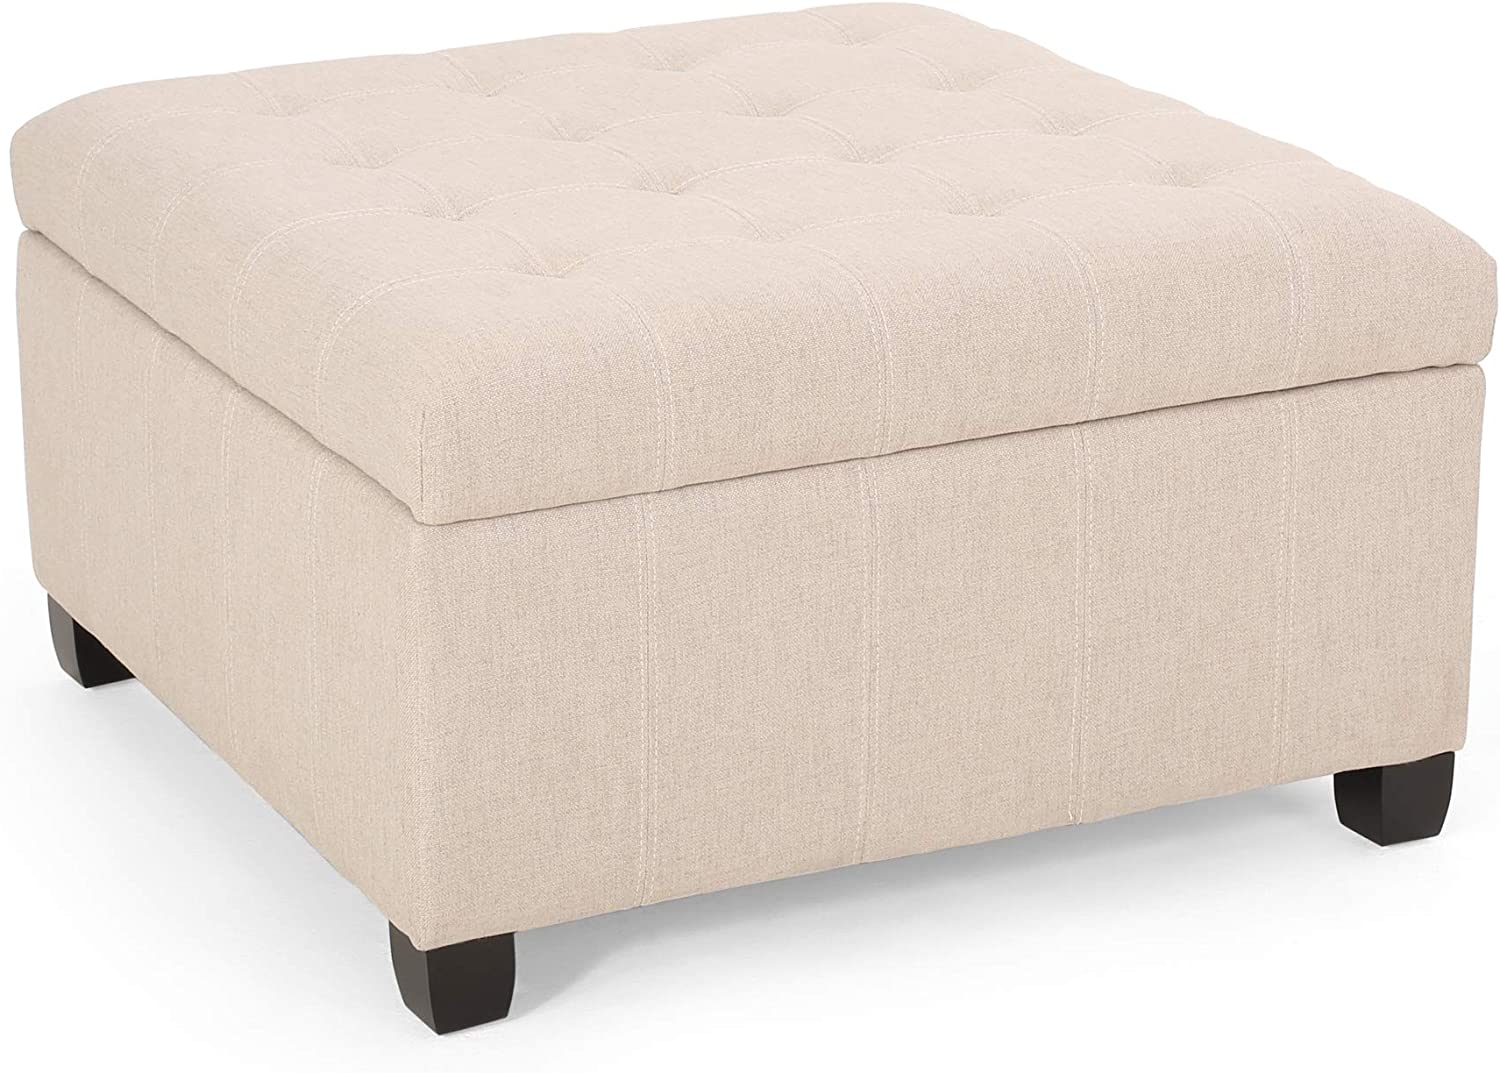 Christopher Knight Home Hedda Tufted Fabric Storage Ottoman, Wheat, Dark Brown